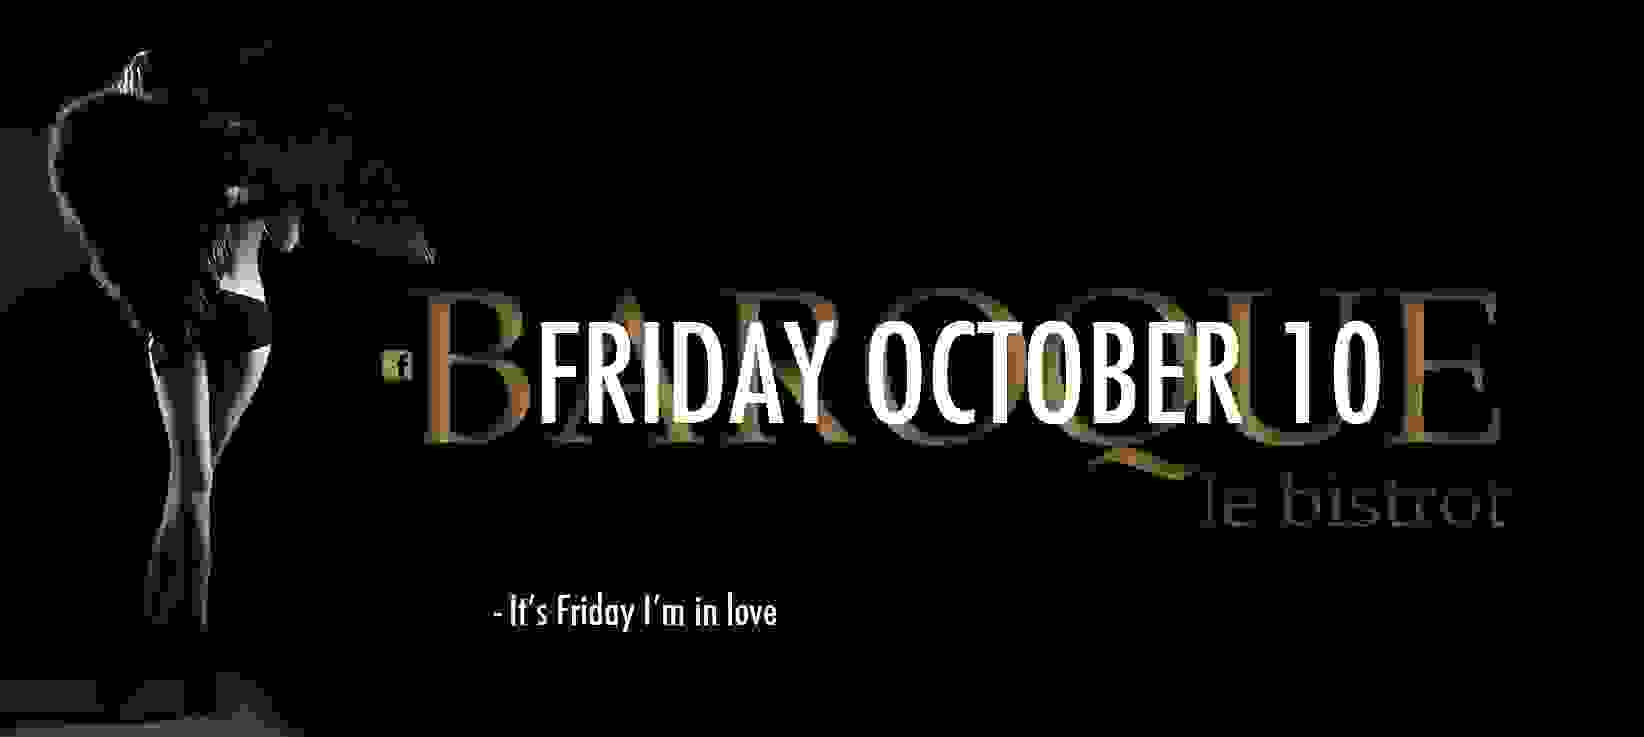 BAROQUE: It's Friday I'm In Love!